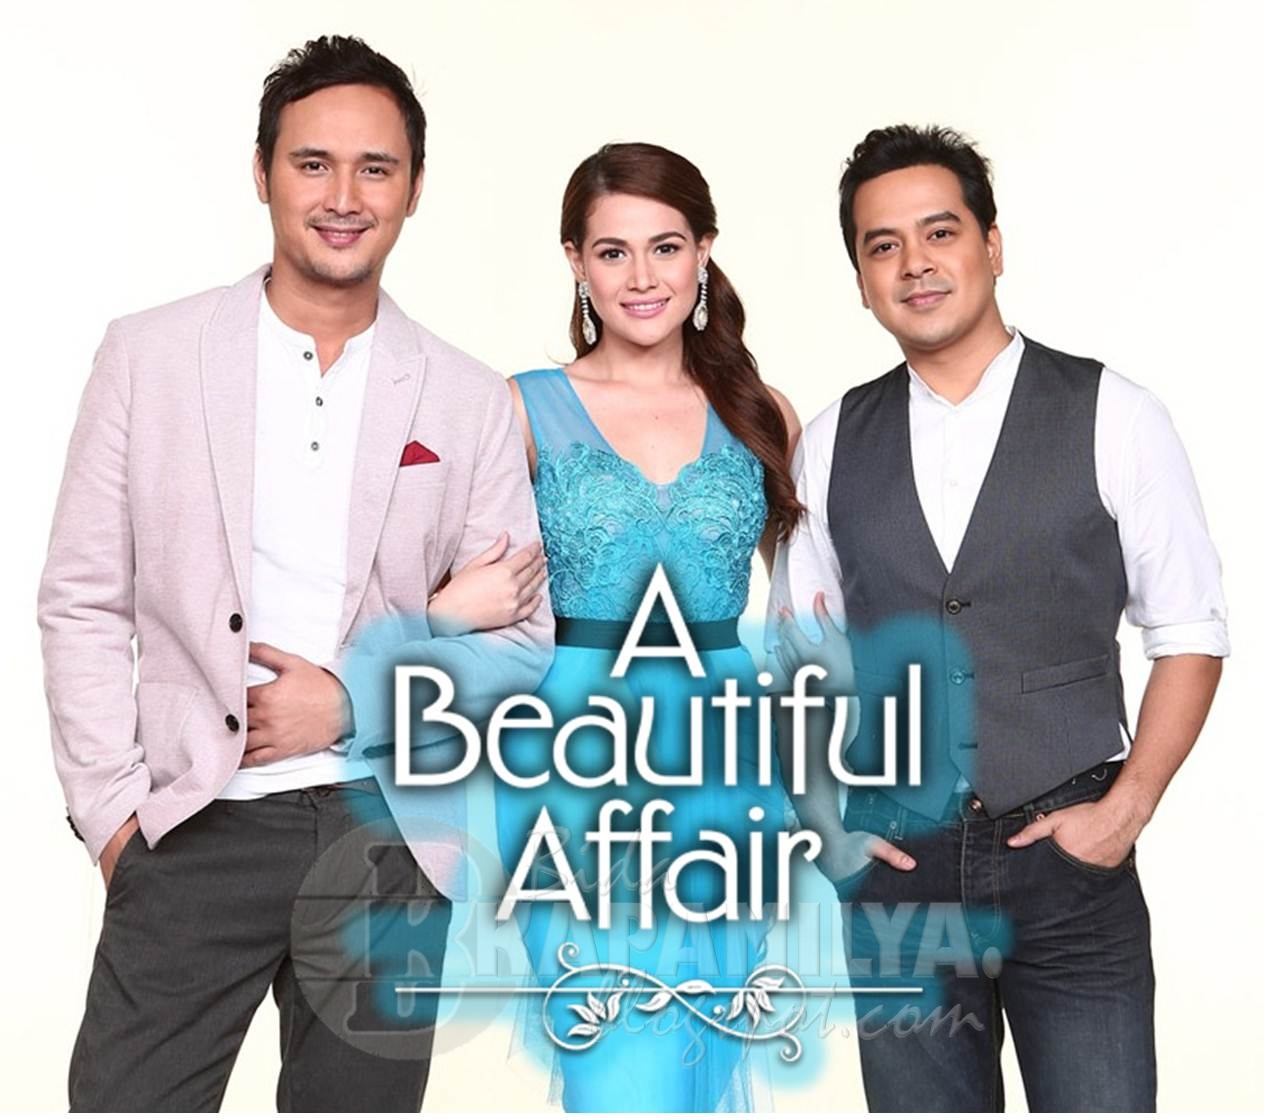 A BEAUTIFUL AFFAIR - OCT. 29, 2012 PART 2/4